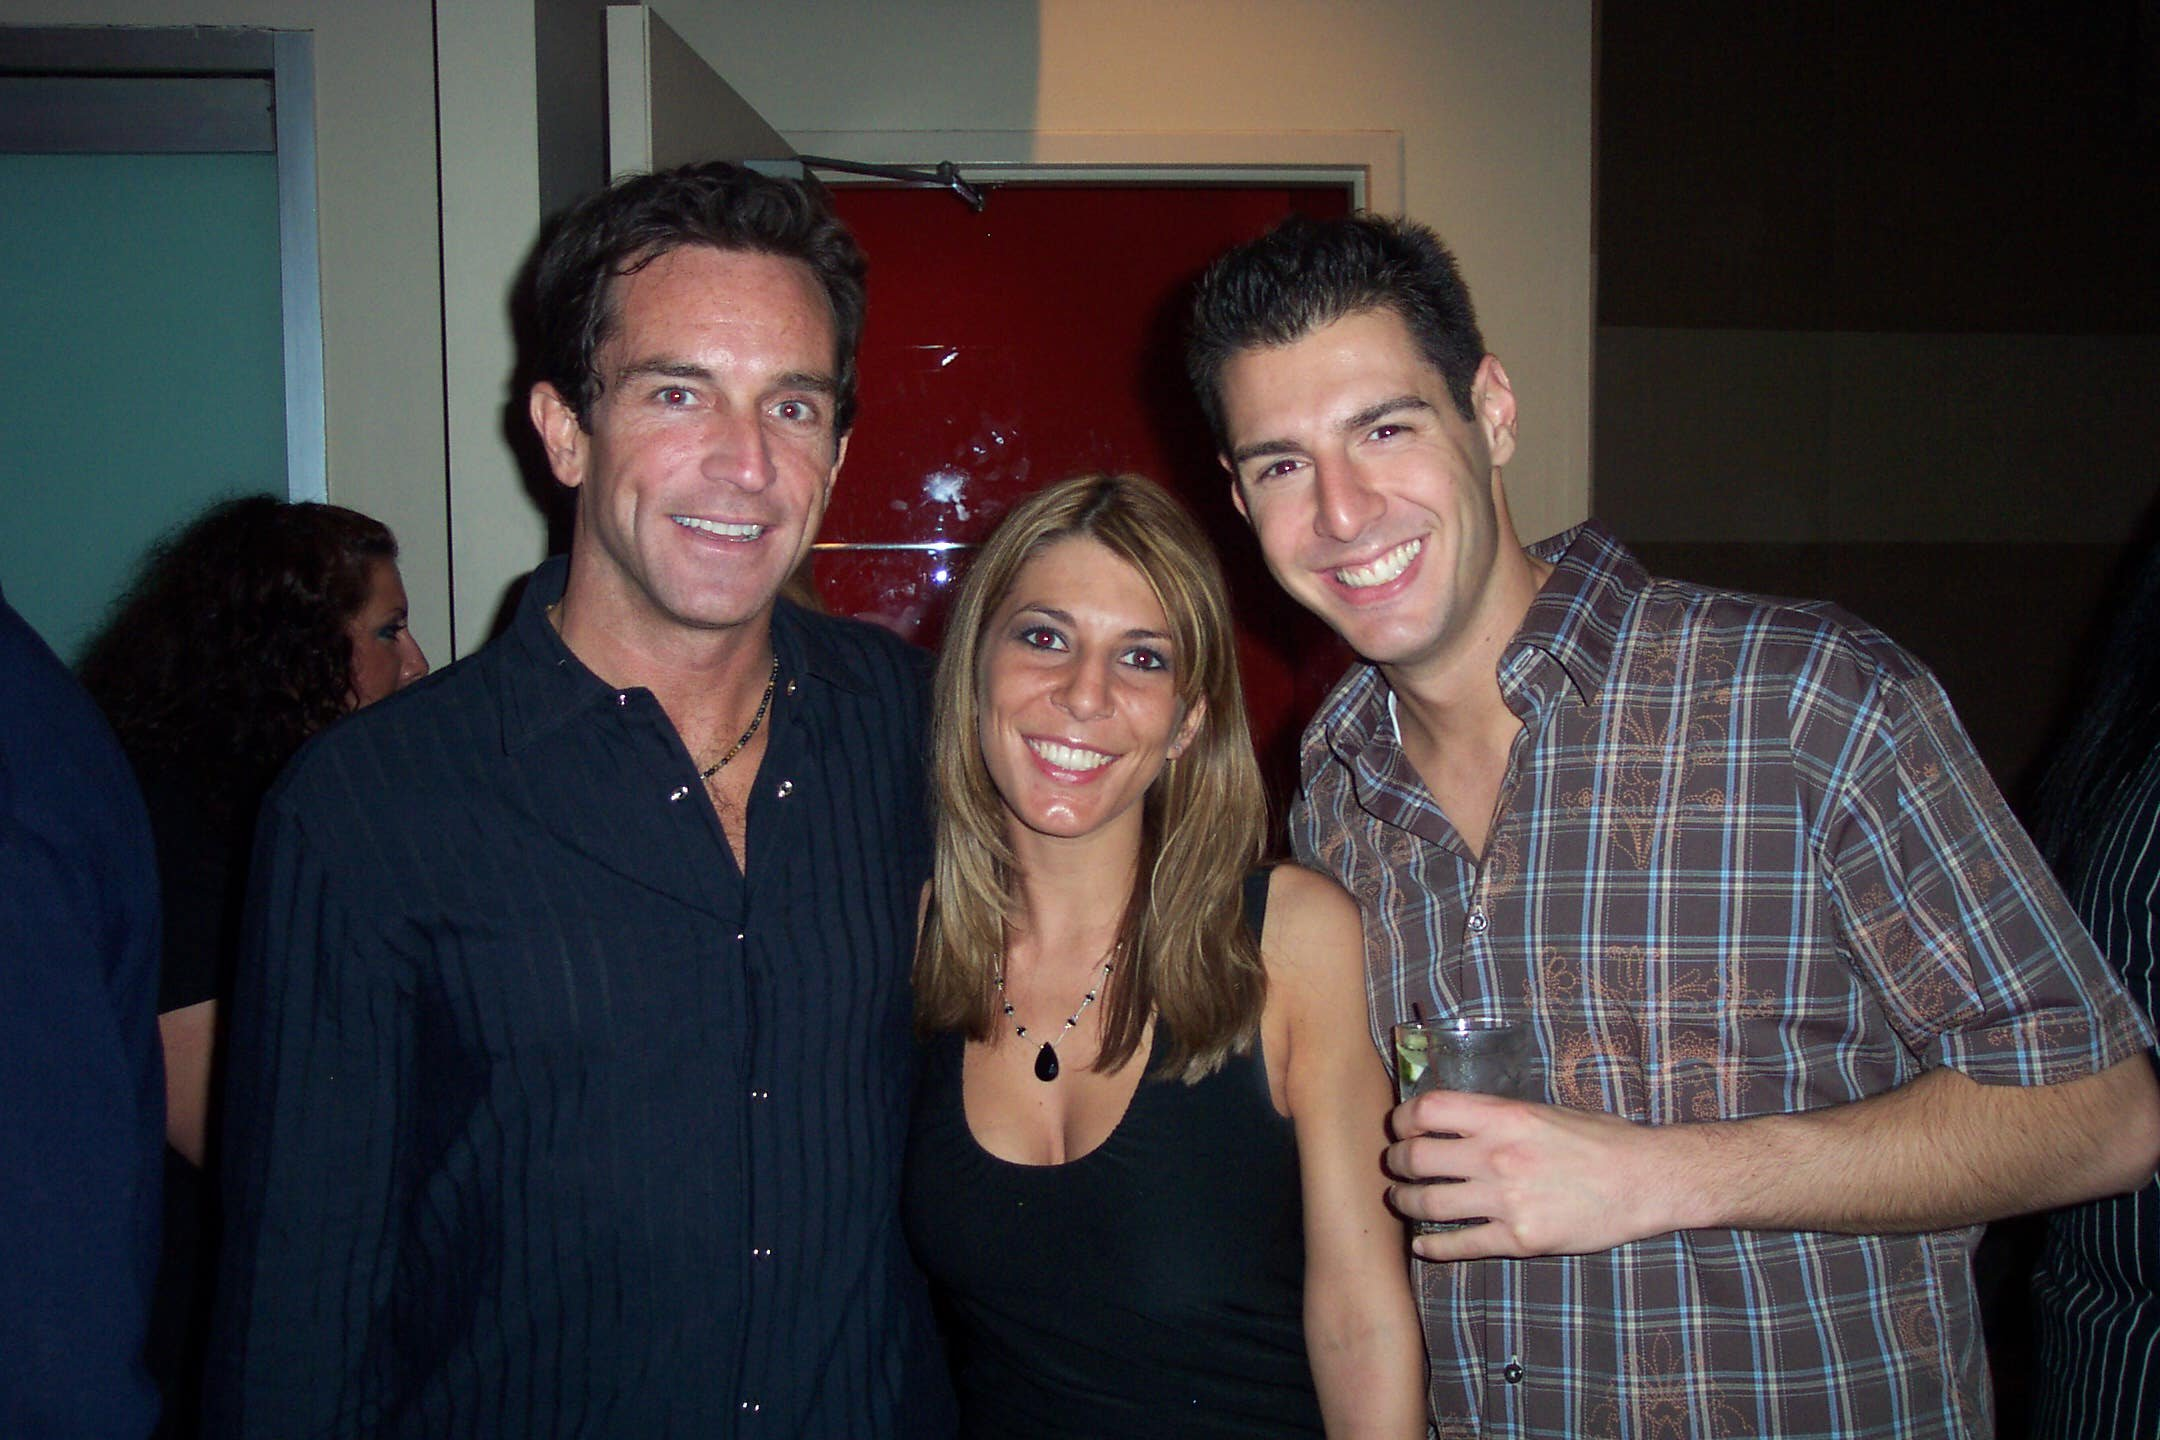 Jeff Probst, Nicole and Rob Cesternino after America's Tribal Council in 2004